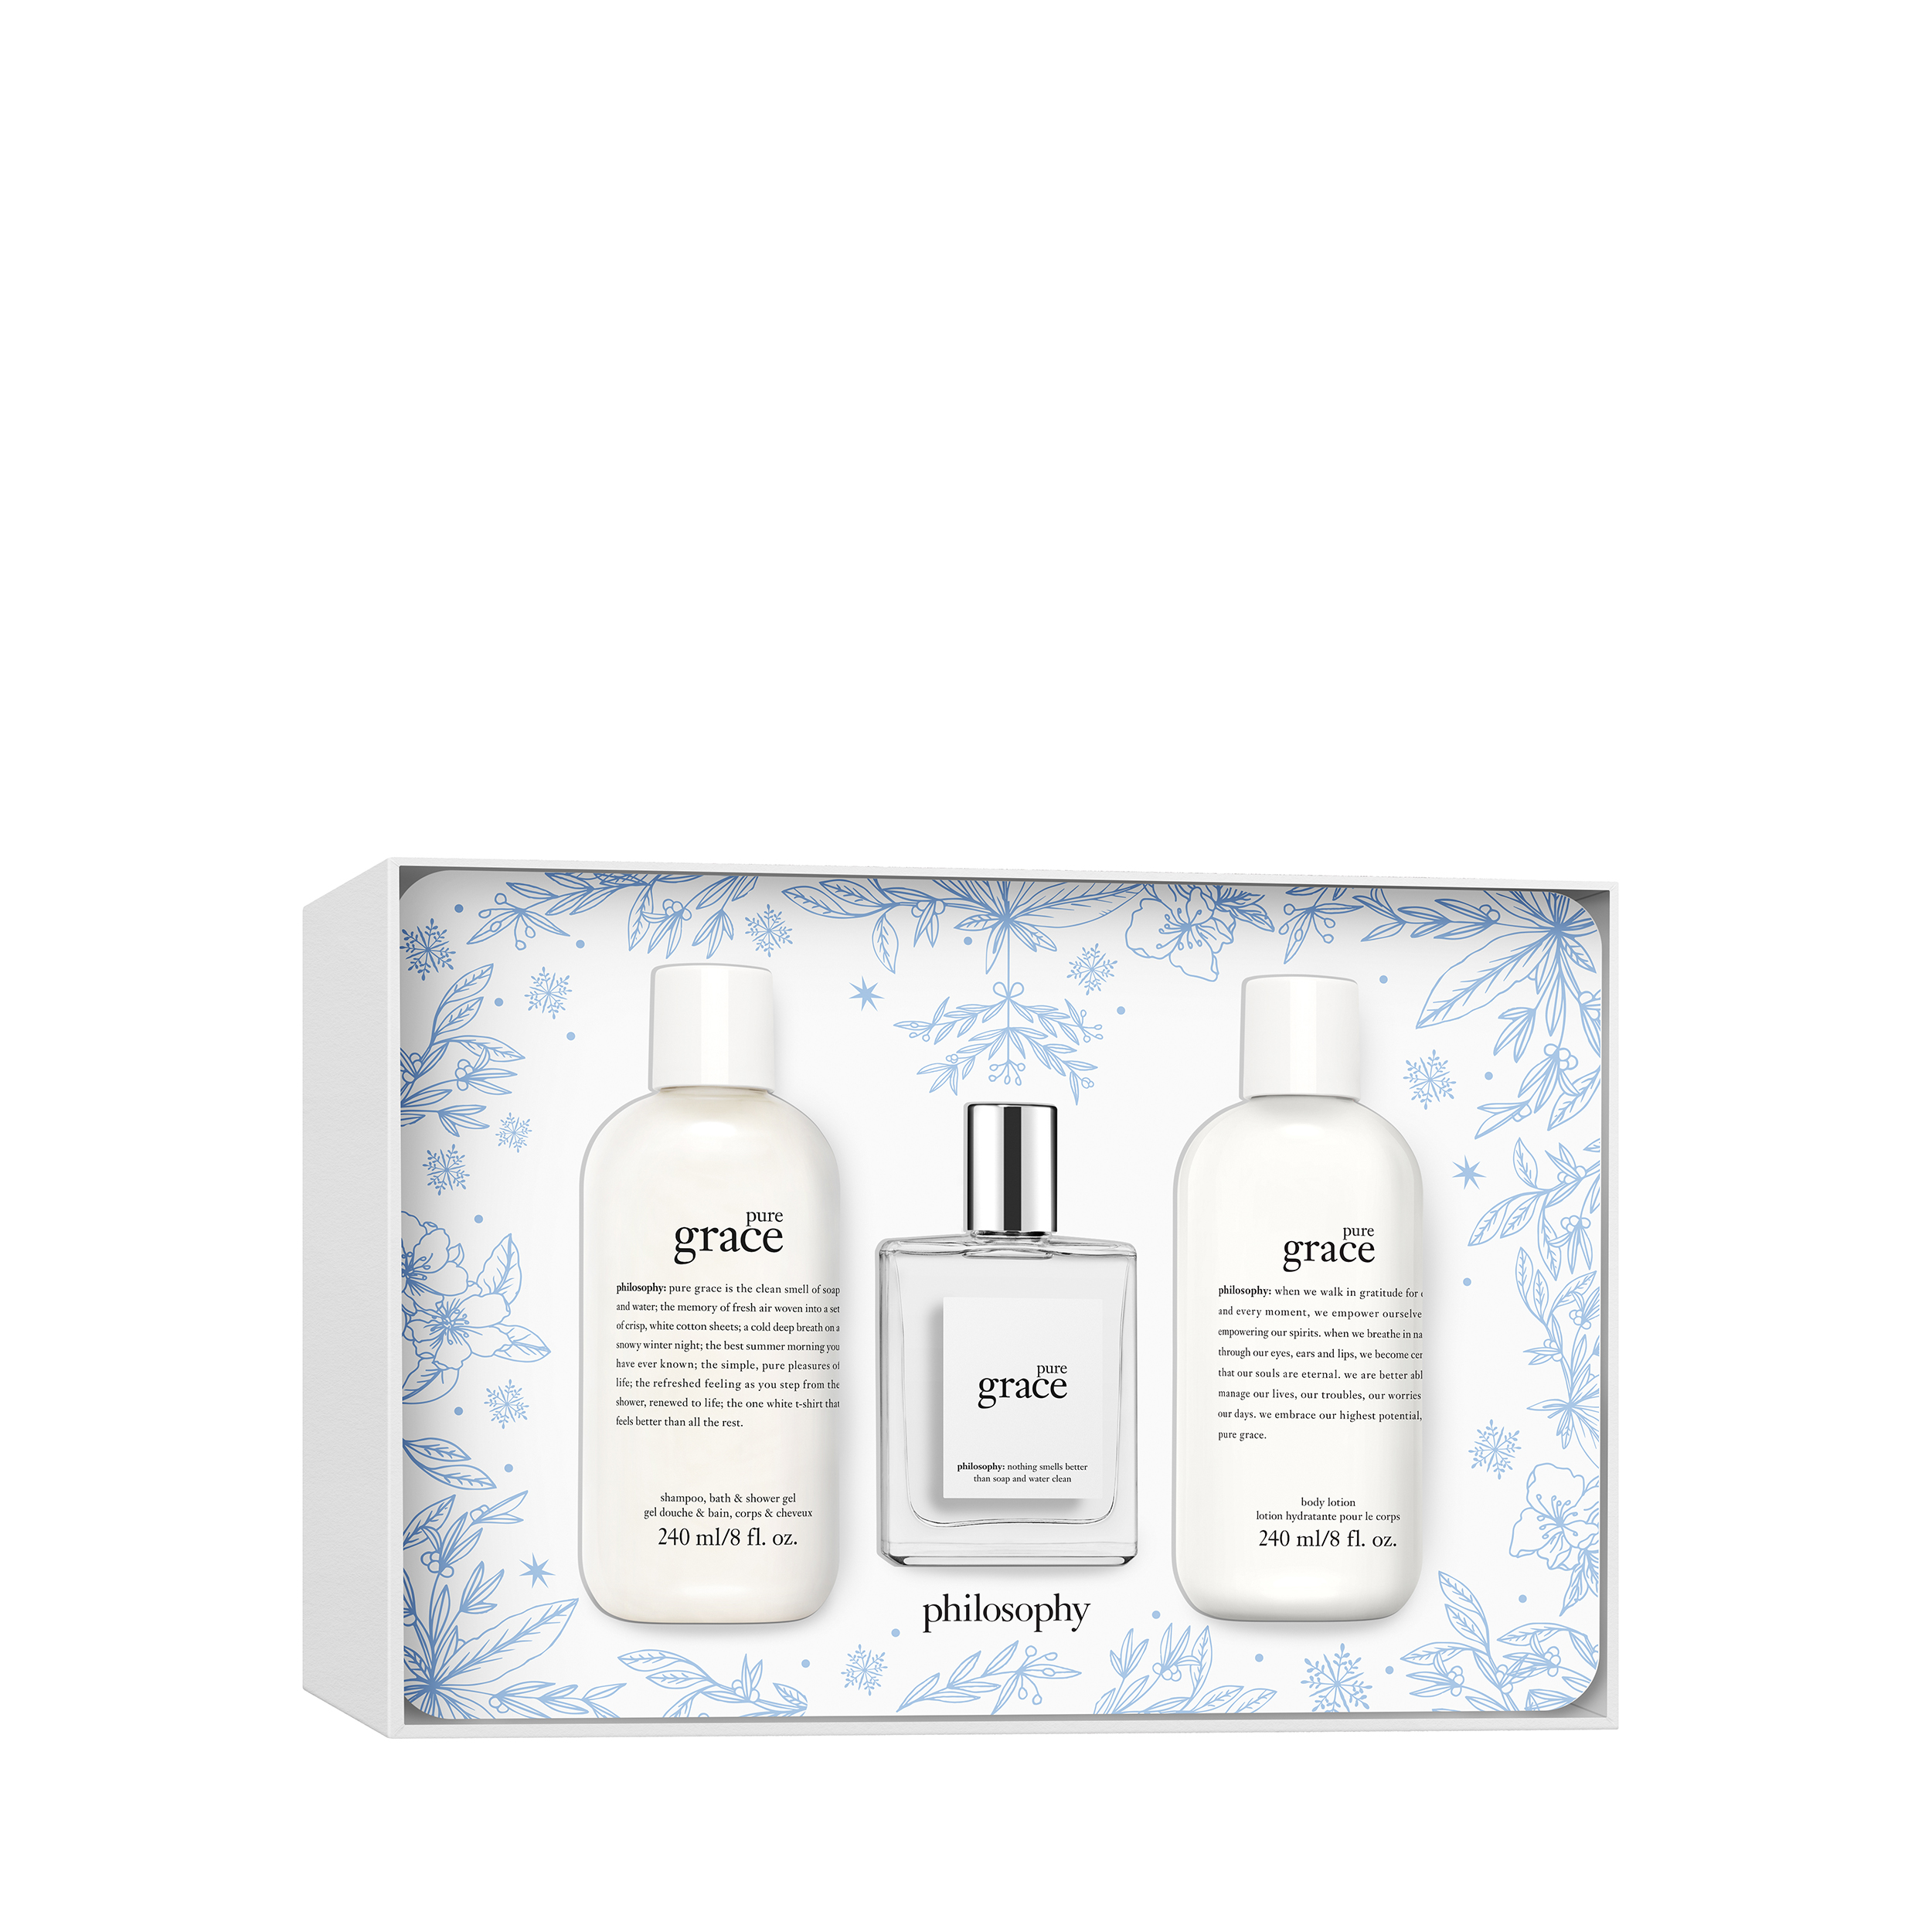 pure grace shower gel, eau de toilette, & body lotion gift set